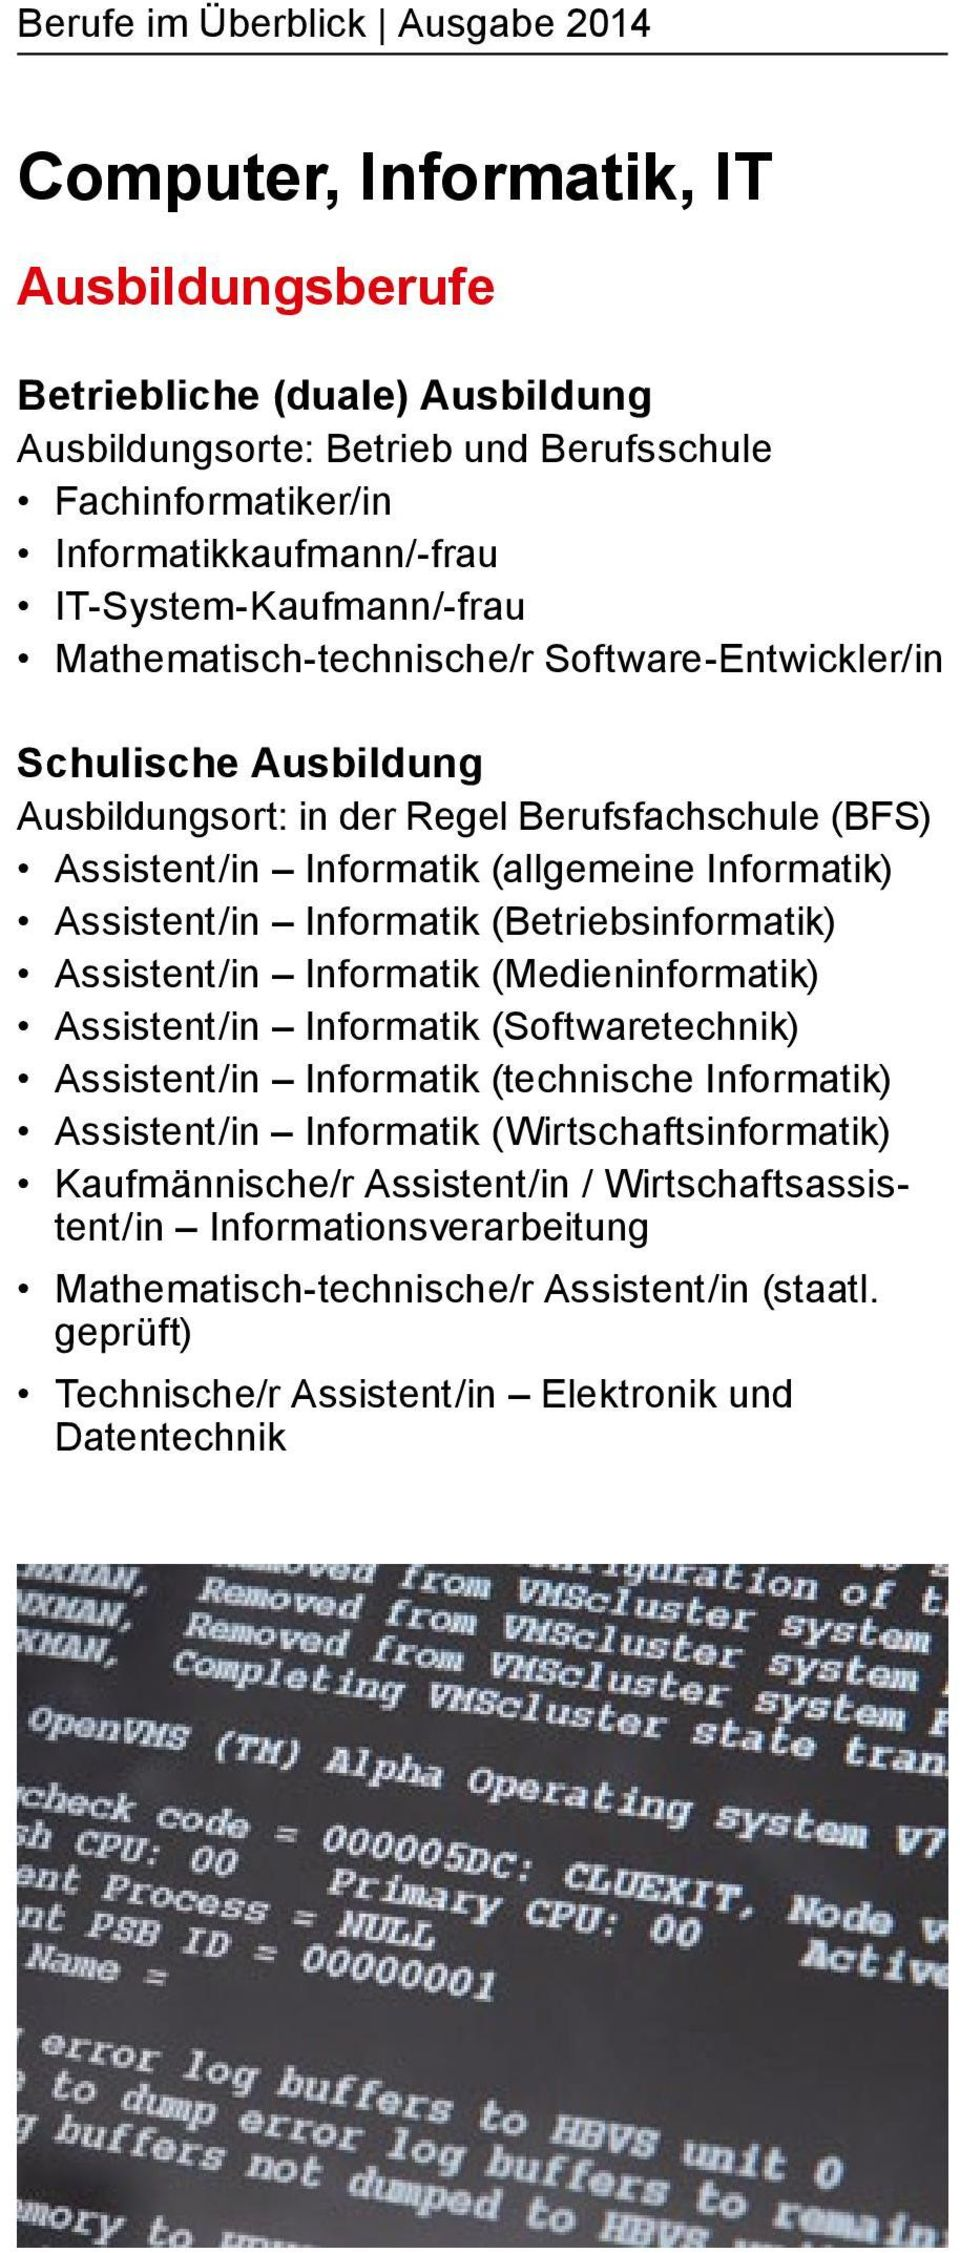 Assistent/in Informatik (Betriebsinformatik) Assistent/in Informatik (Medieninformatik) Assistent/in Informatik (Softwaretechnik) Assistent/in Informatik (technische Informatik) Assistent/in